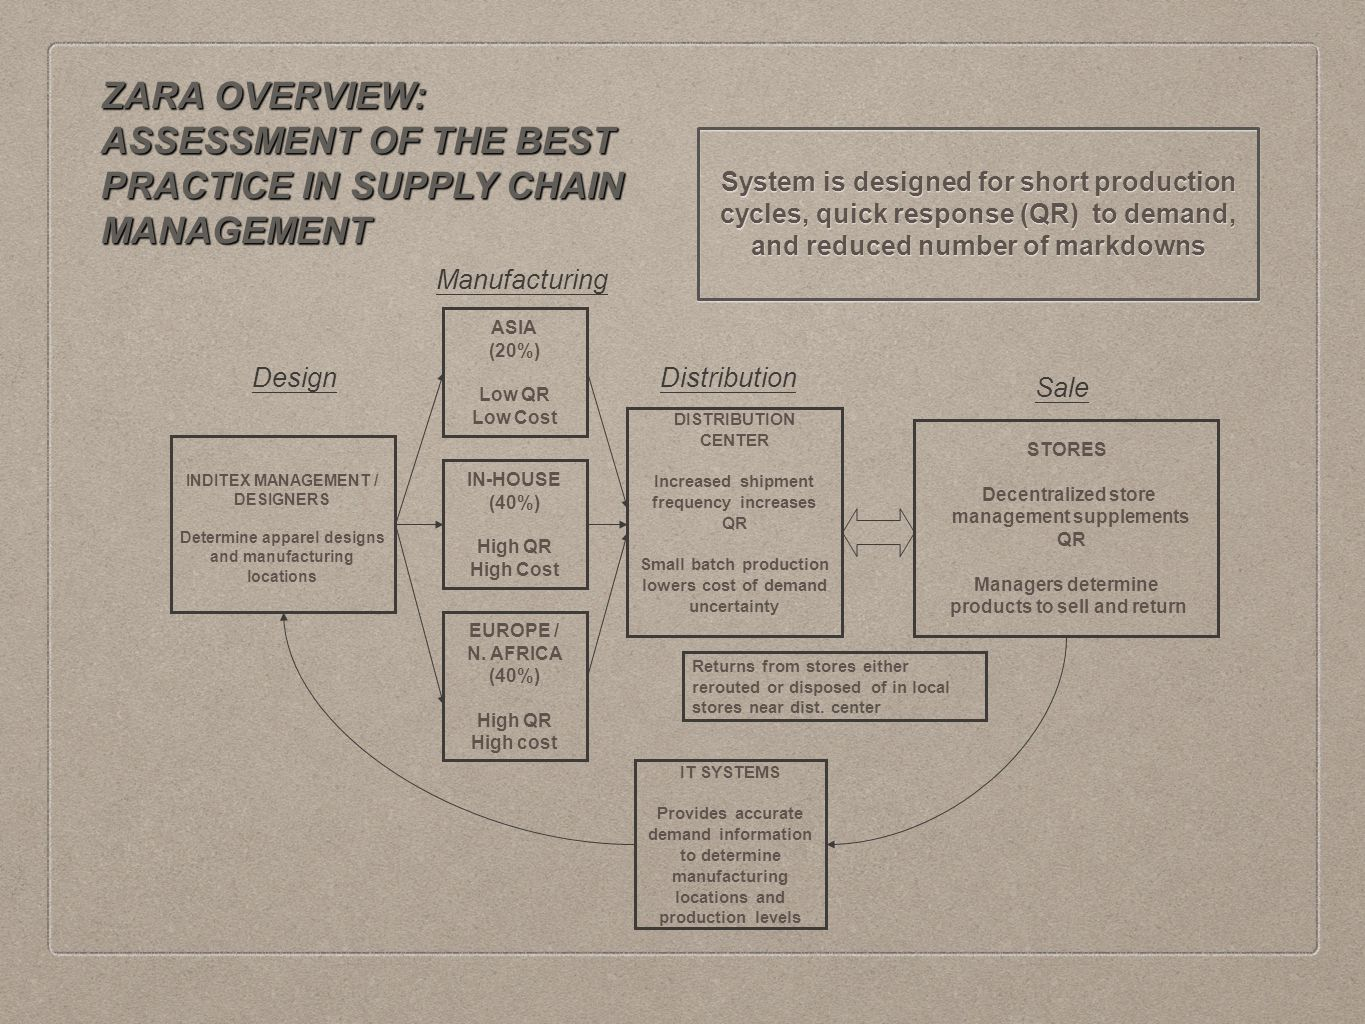 supply chain management practices of spanish Journal of business economics and management  and illustrate how these practices can enrich the supply chain  practices and performance outcomes in spanish.